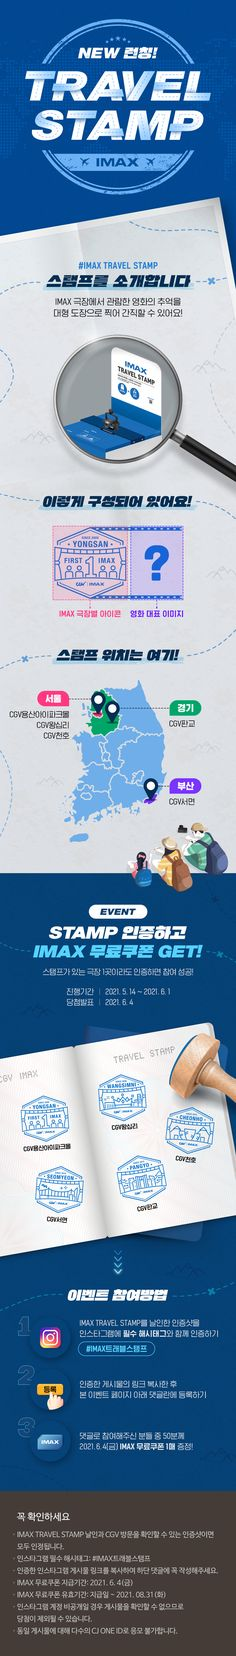 CGV Travel Stamp, Web E, Event Page, Text Design, New Travel, Event Planning, Promotion, Banner, Typography